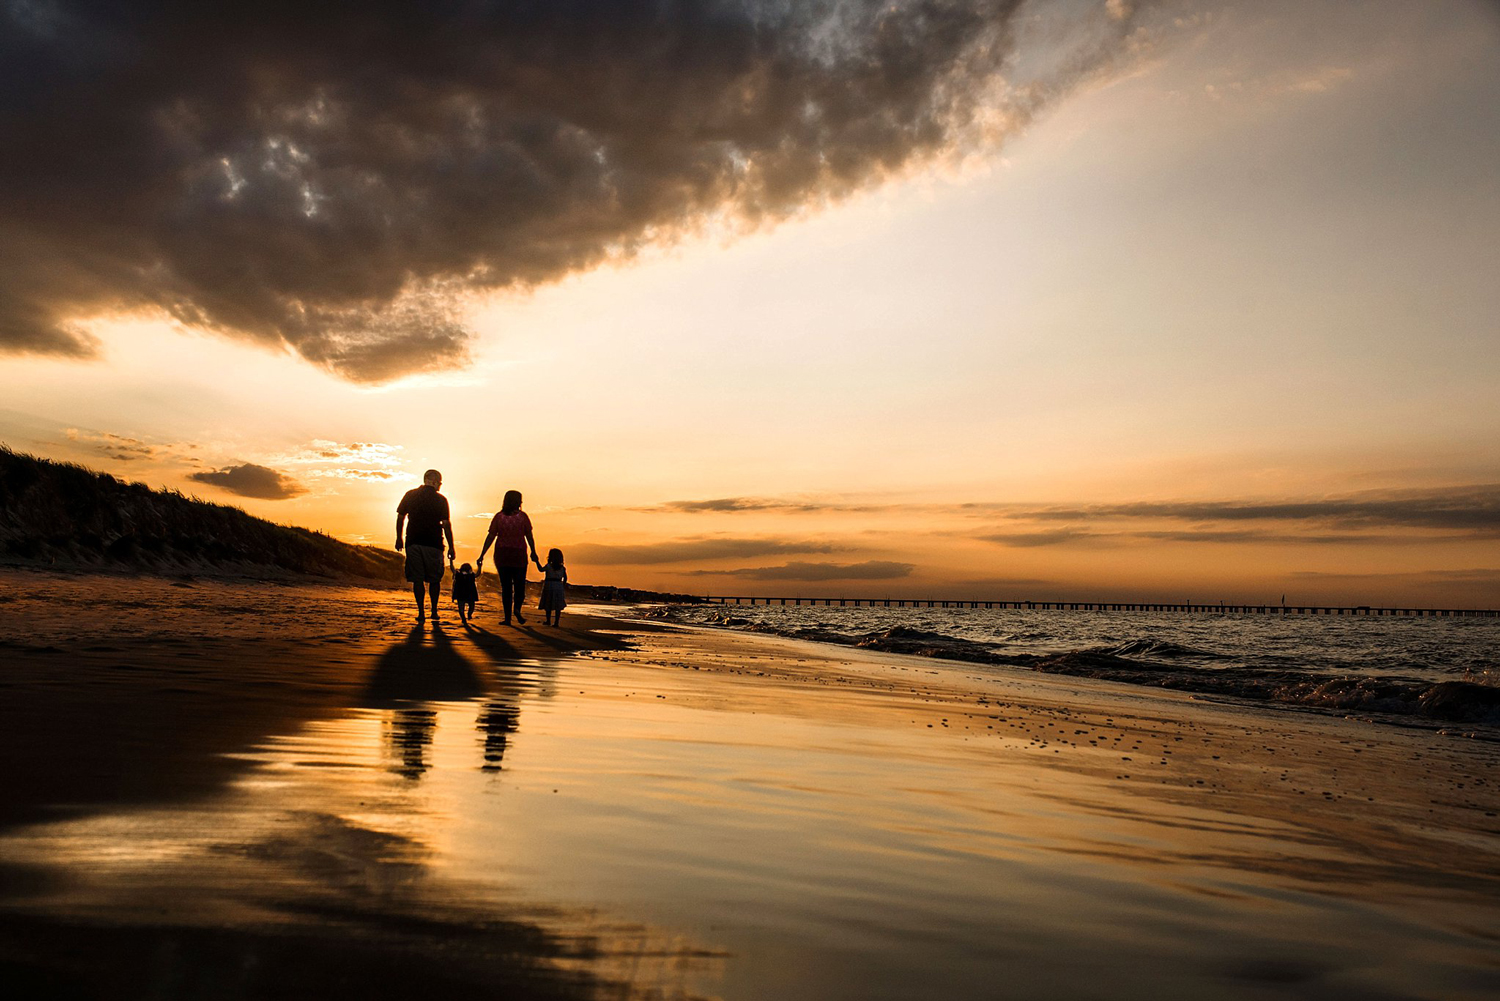 rolling-clouds-sunset-sky-family-silhouette-on-the-beach-melissa-bliss-photography-virginia-beach-photographer.jpg